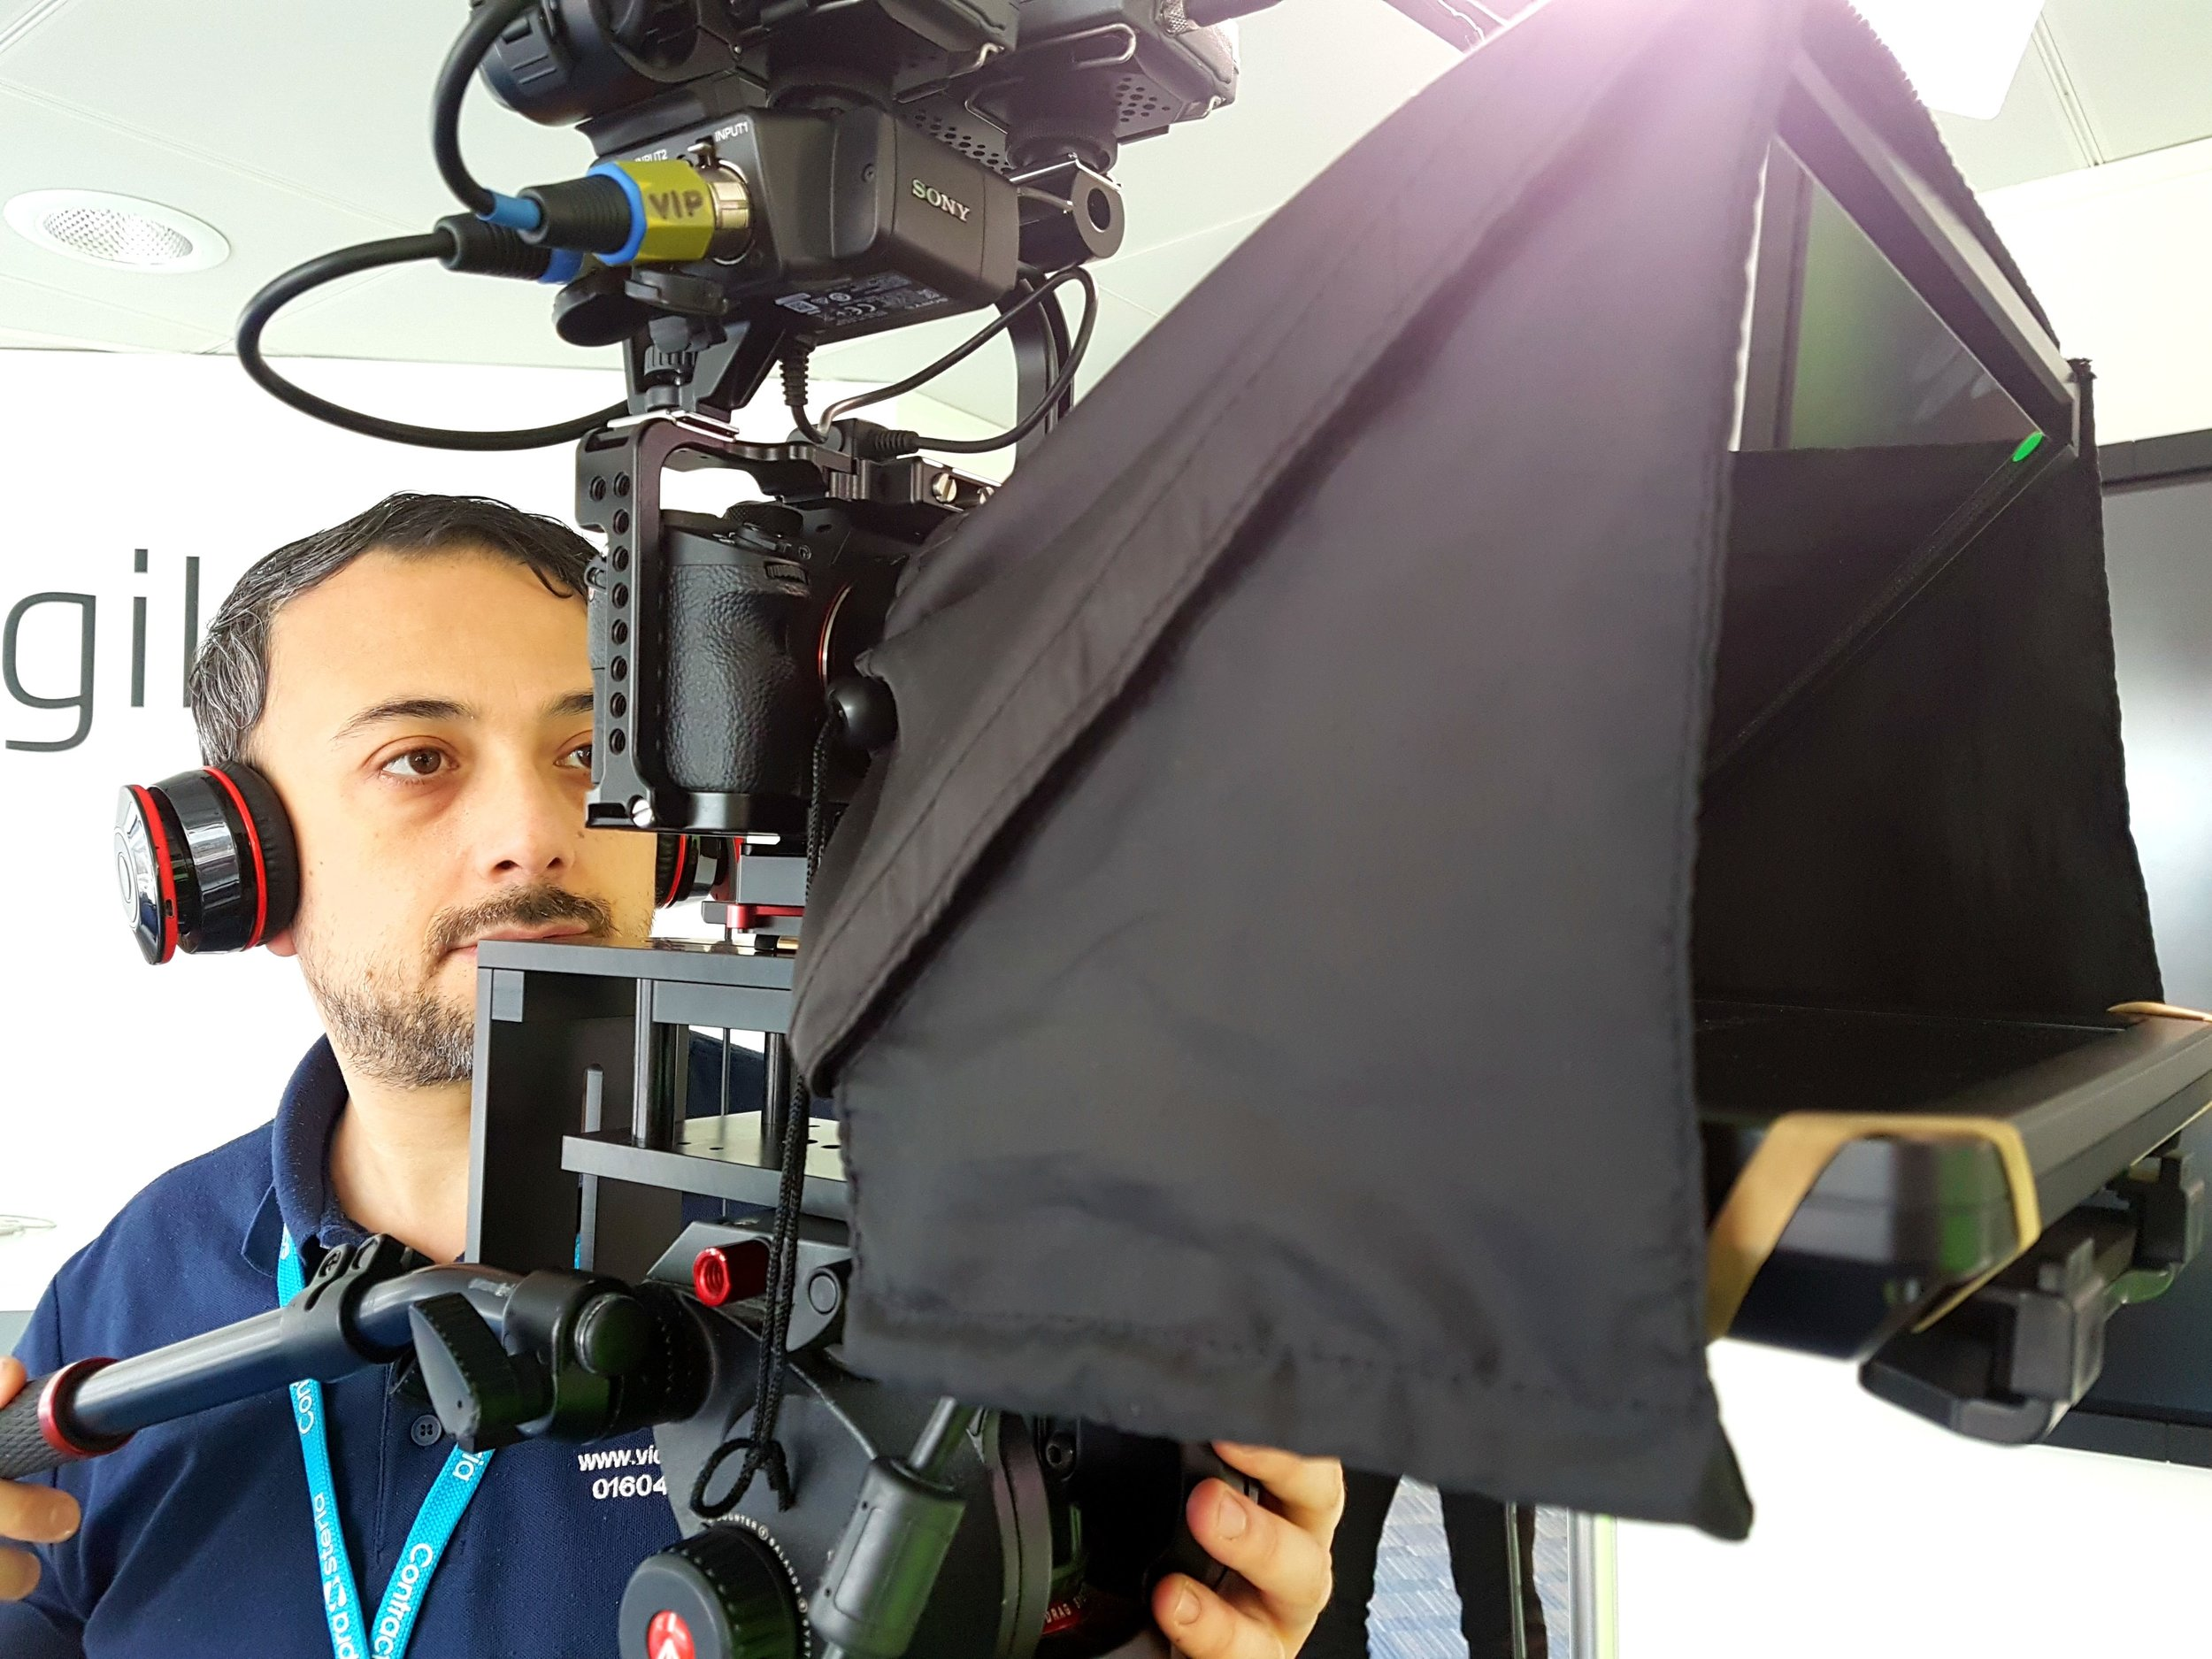 Film Production - Our production team offer project management from your initial vision to the delivery of your media.We will assist, guide and advise through every step of the production process. This includes concept, music selection, voice-overs and editing.